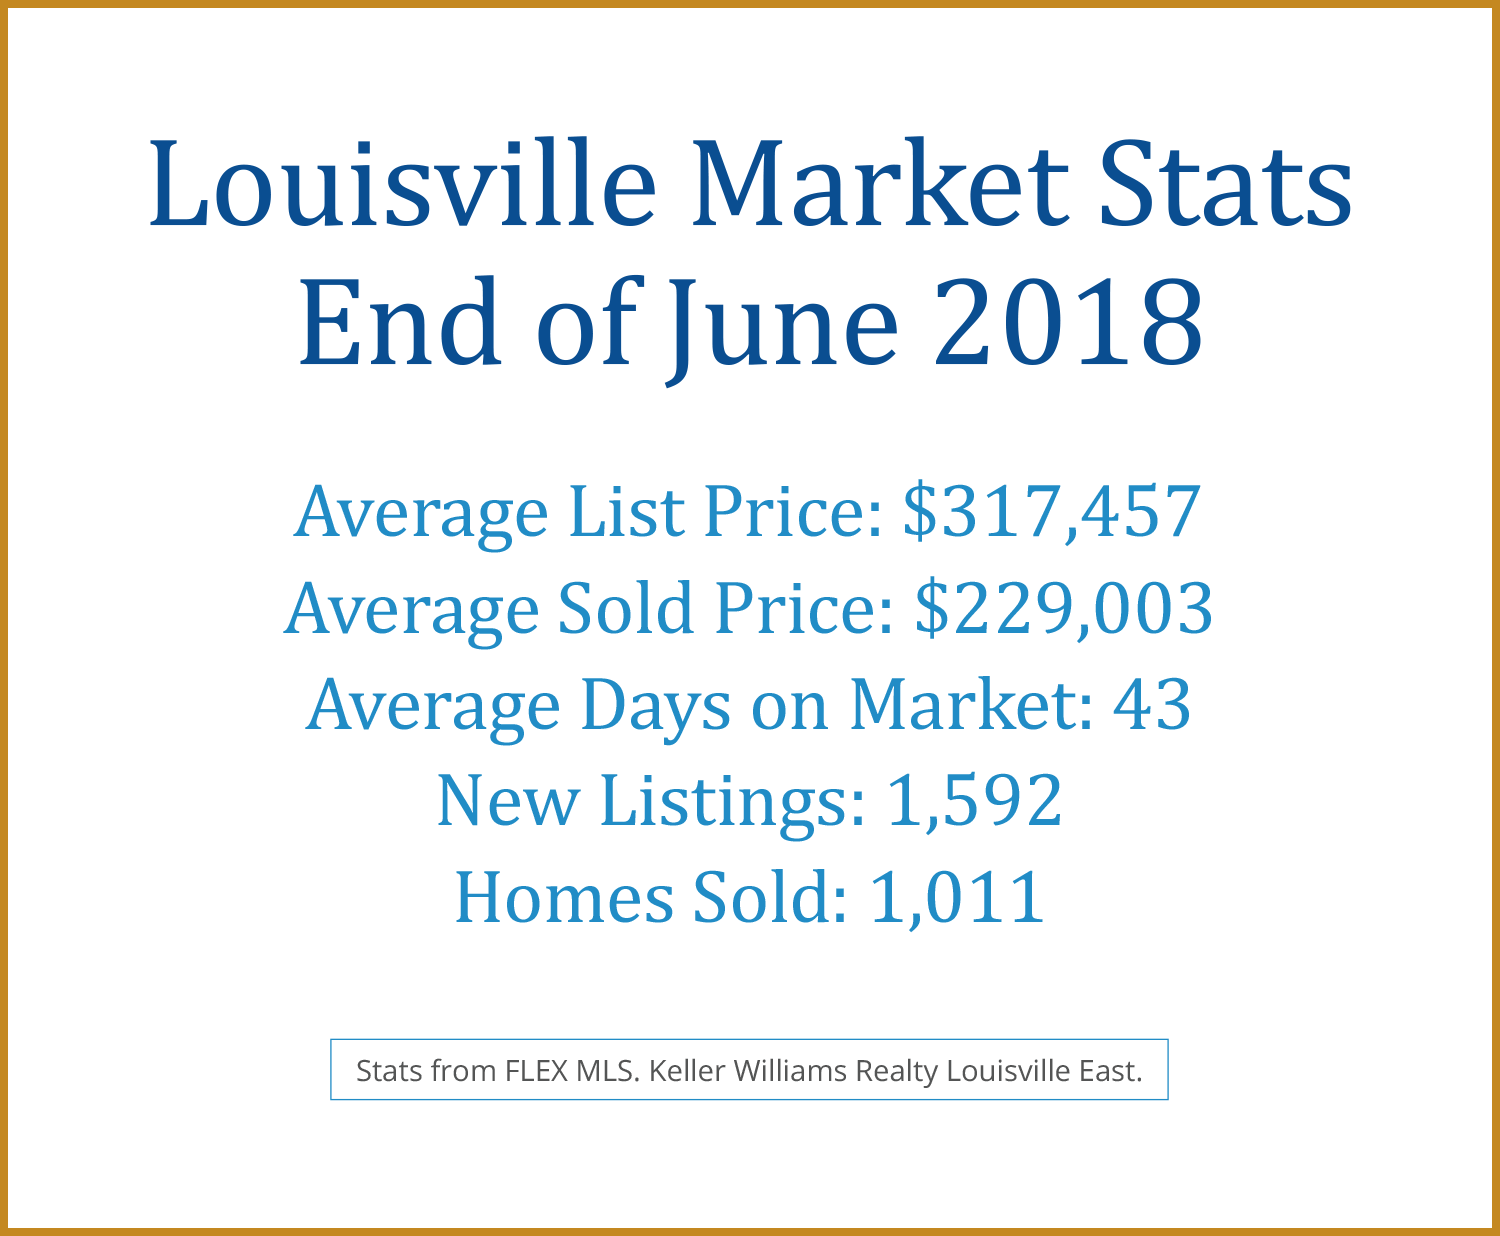 <a href='https://www.louisvillervg.com/index.php?types[]=1&types[]=2&areas[]=city:Louisville&beds=0&baths=0&min=0&max=100000000&map=0&quick=1&submit=Search' title='Search Properties in Louisville'>Louisville</a> June 2018 Real Estate Stats